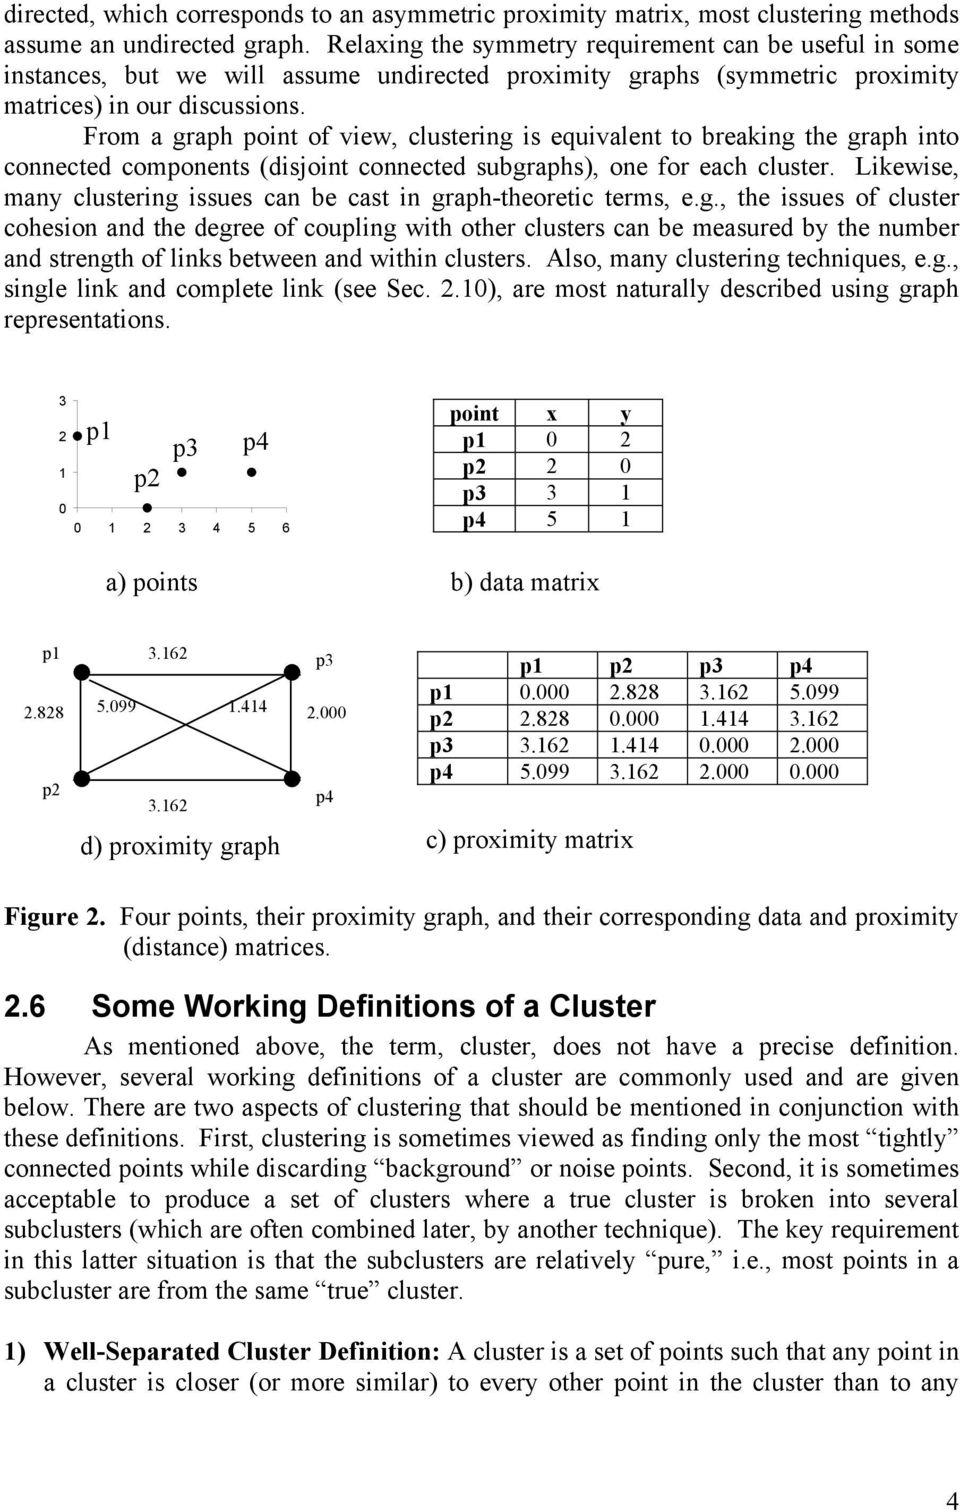 From a graph point of view, clustering is equivalent to breaking the graph into connected components (disjoint connected subgraphs), one for each cluster.